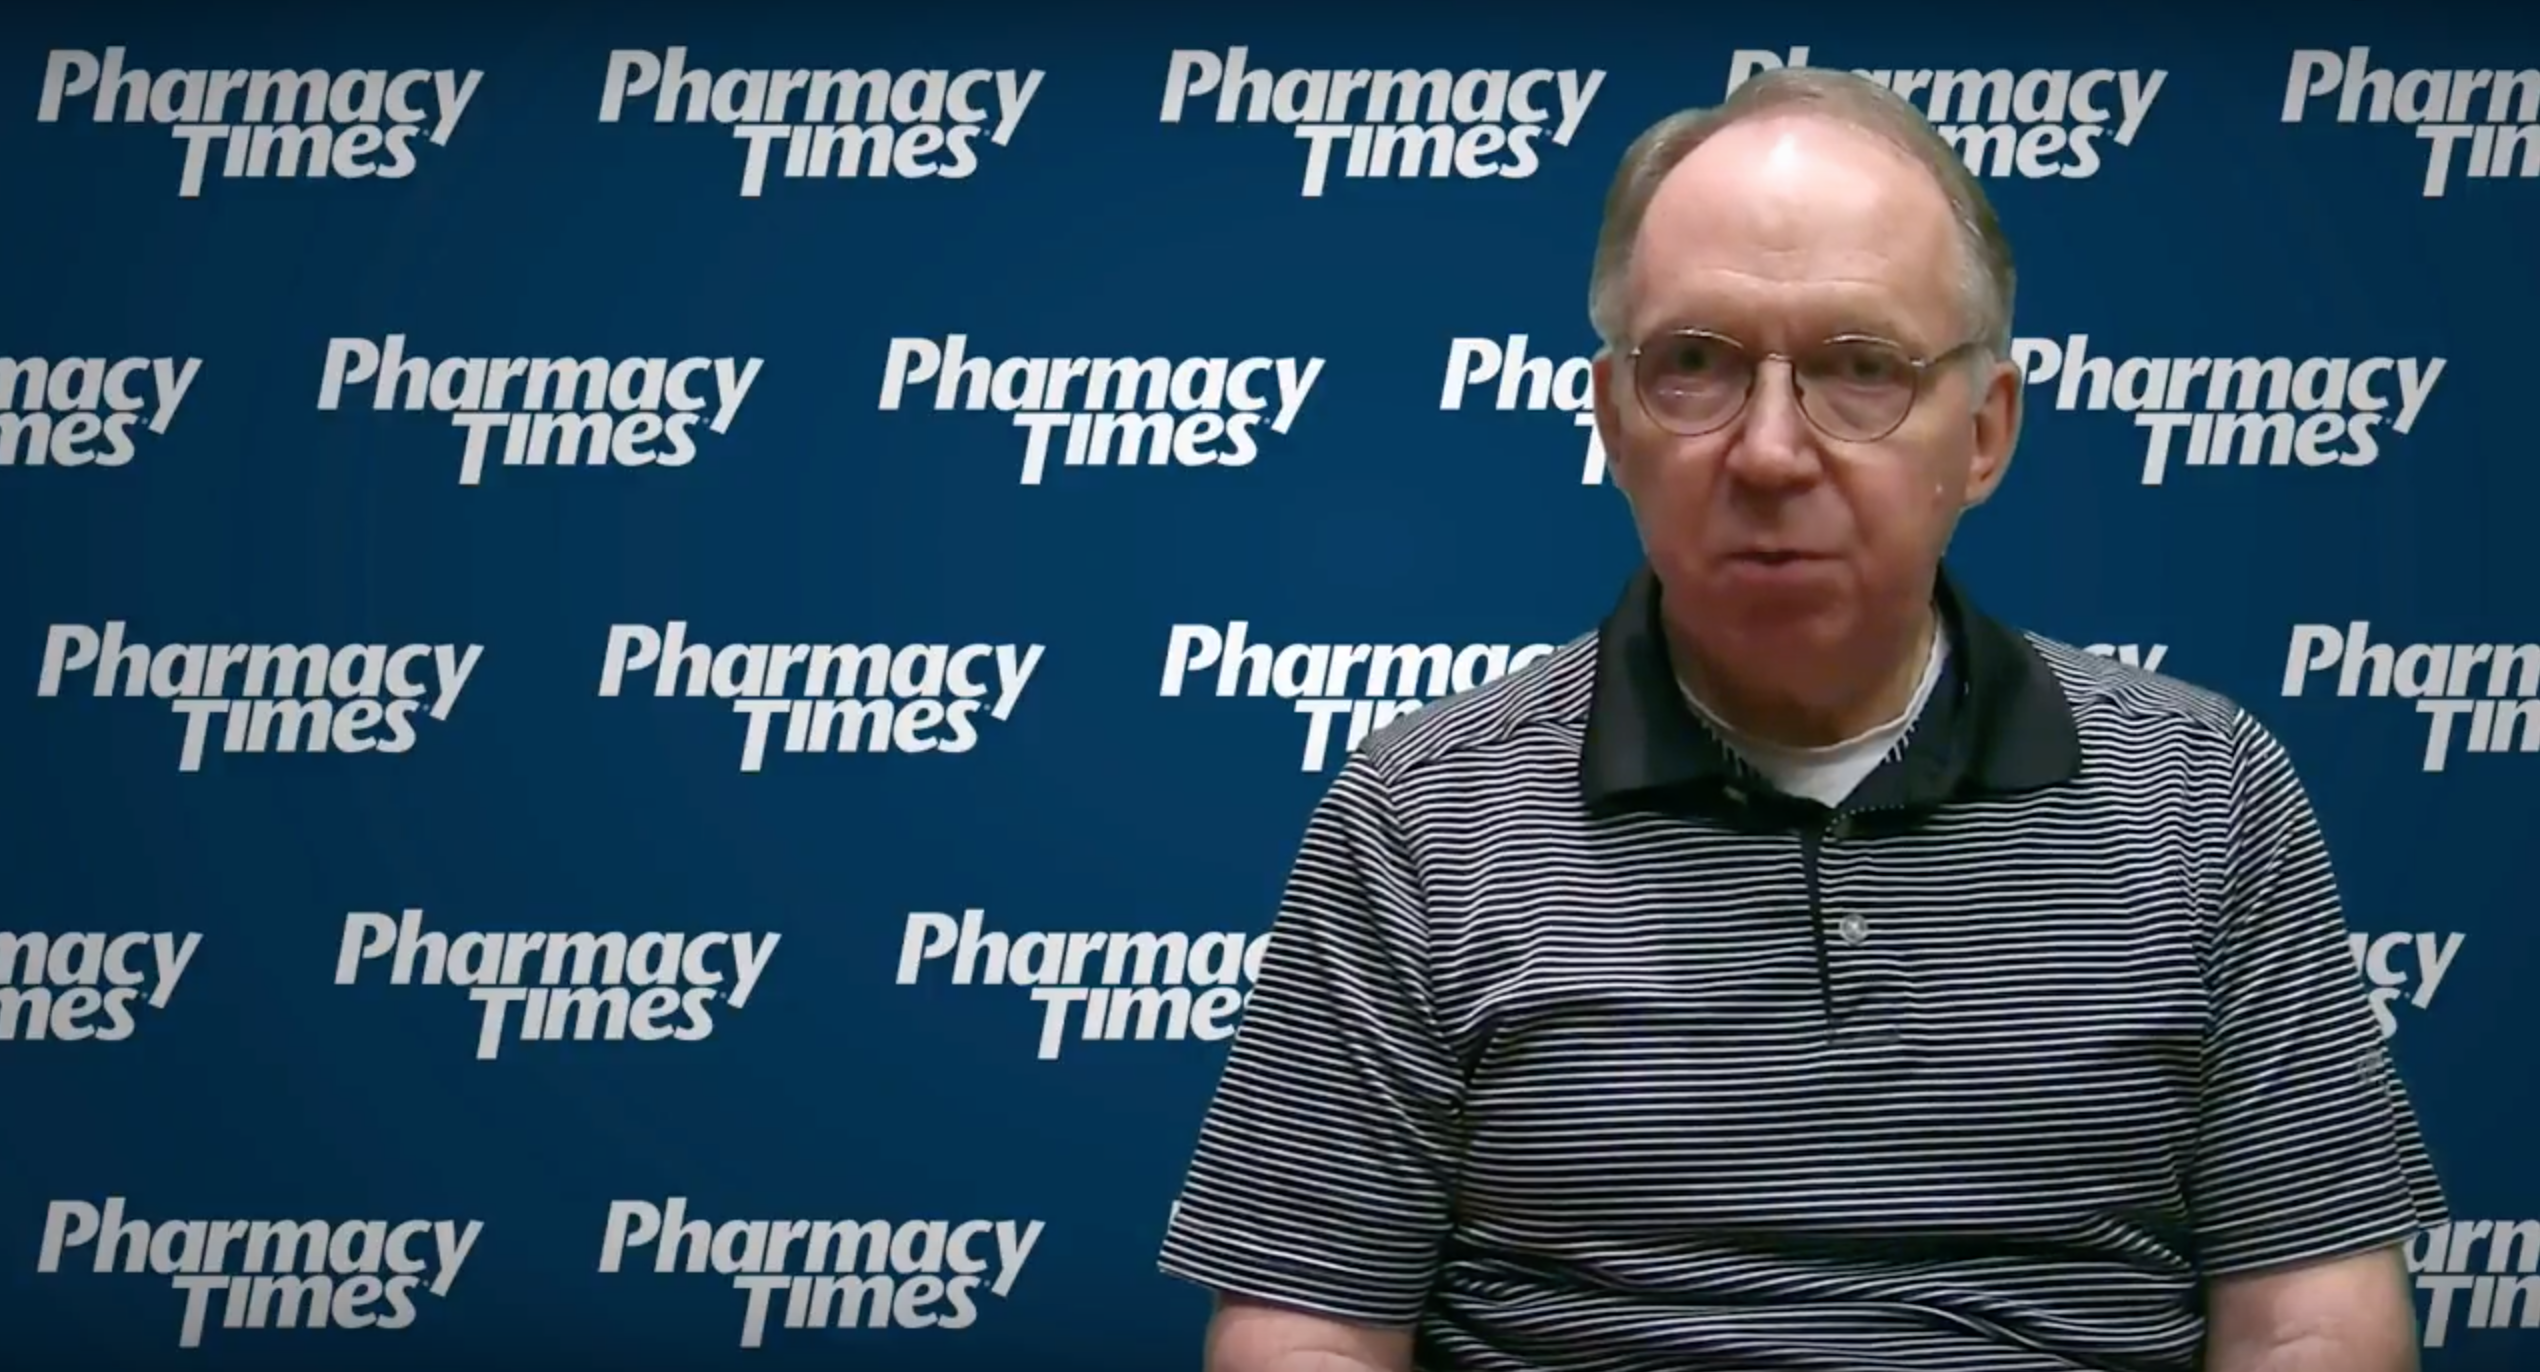 How Can Pharmacists Advise Parents on Symptoms of Cold Vs Allergies in Children?